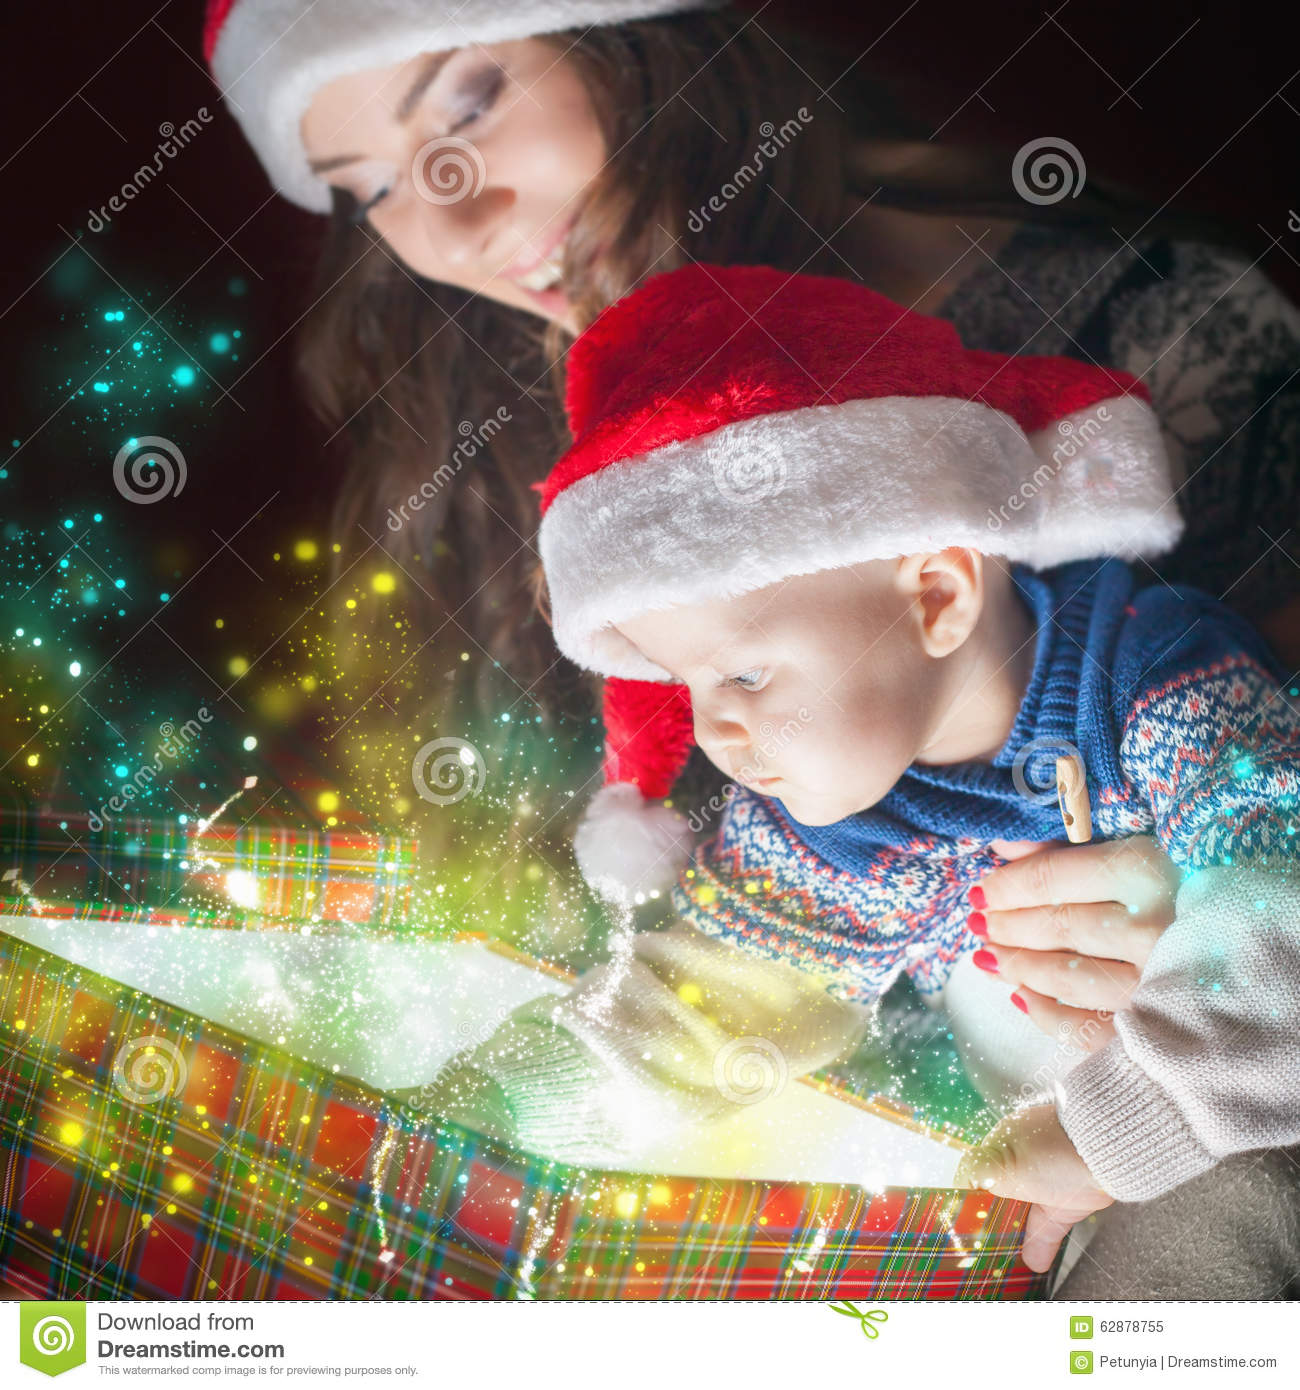 Mom Opens The Magic Box With A Gift For Child Stock Image - Image of ...